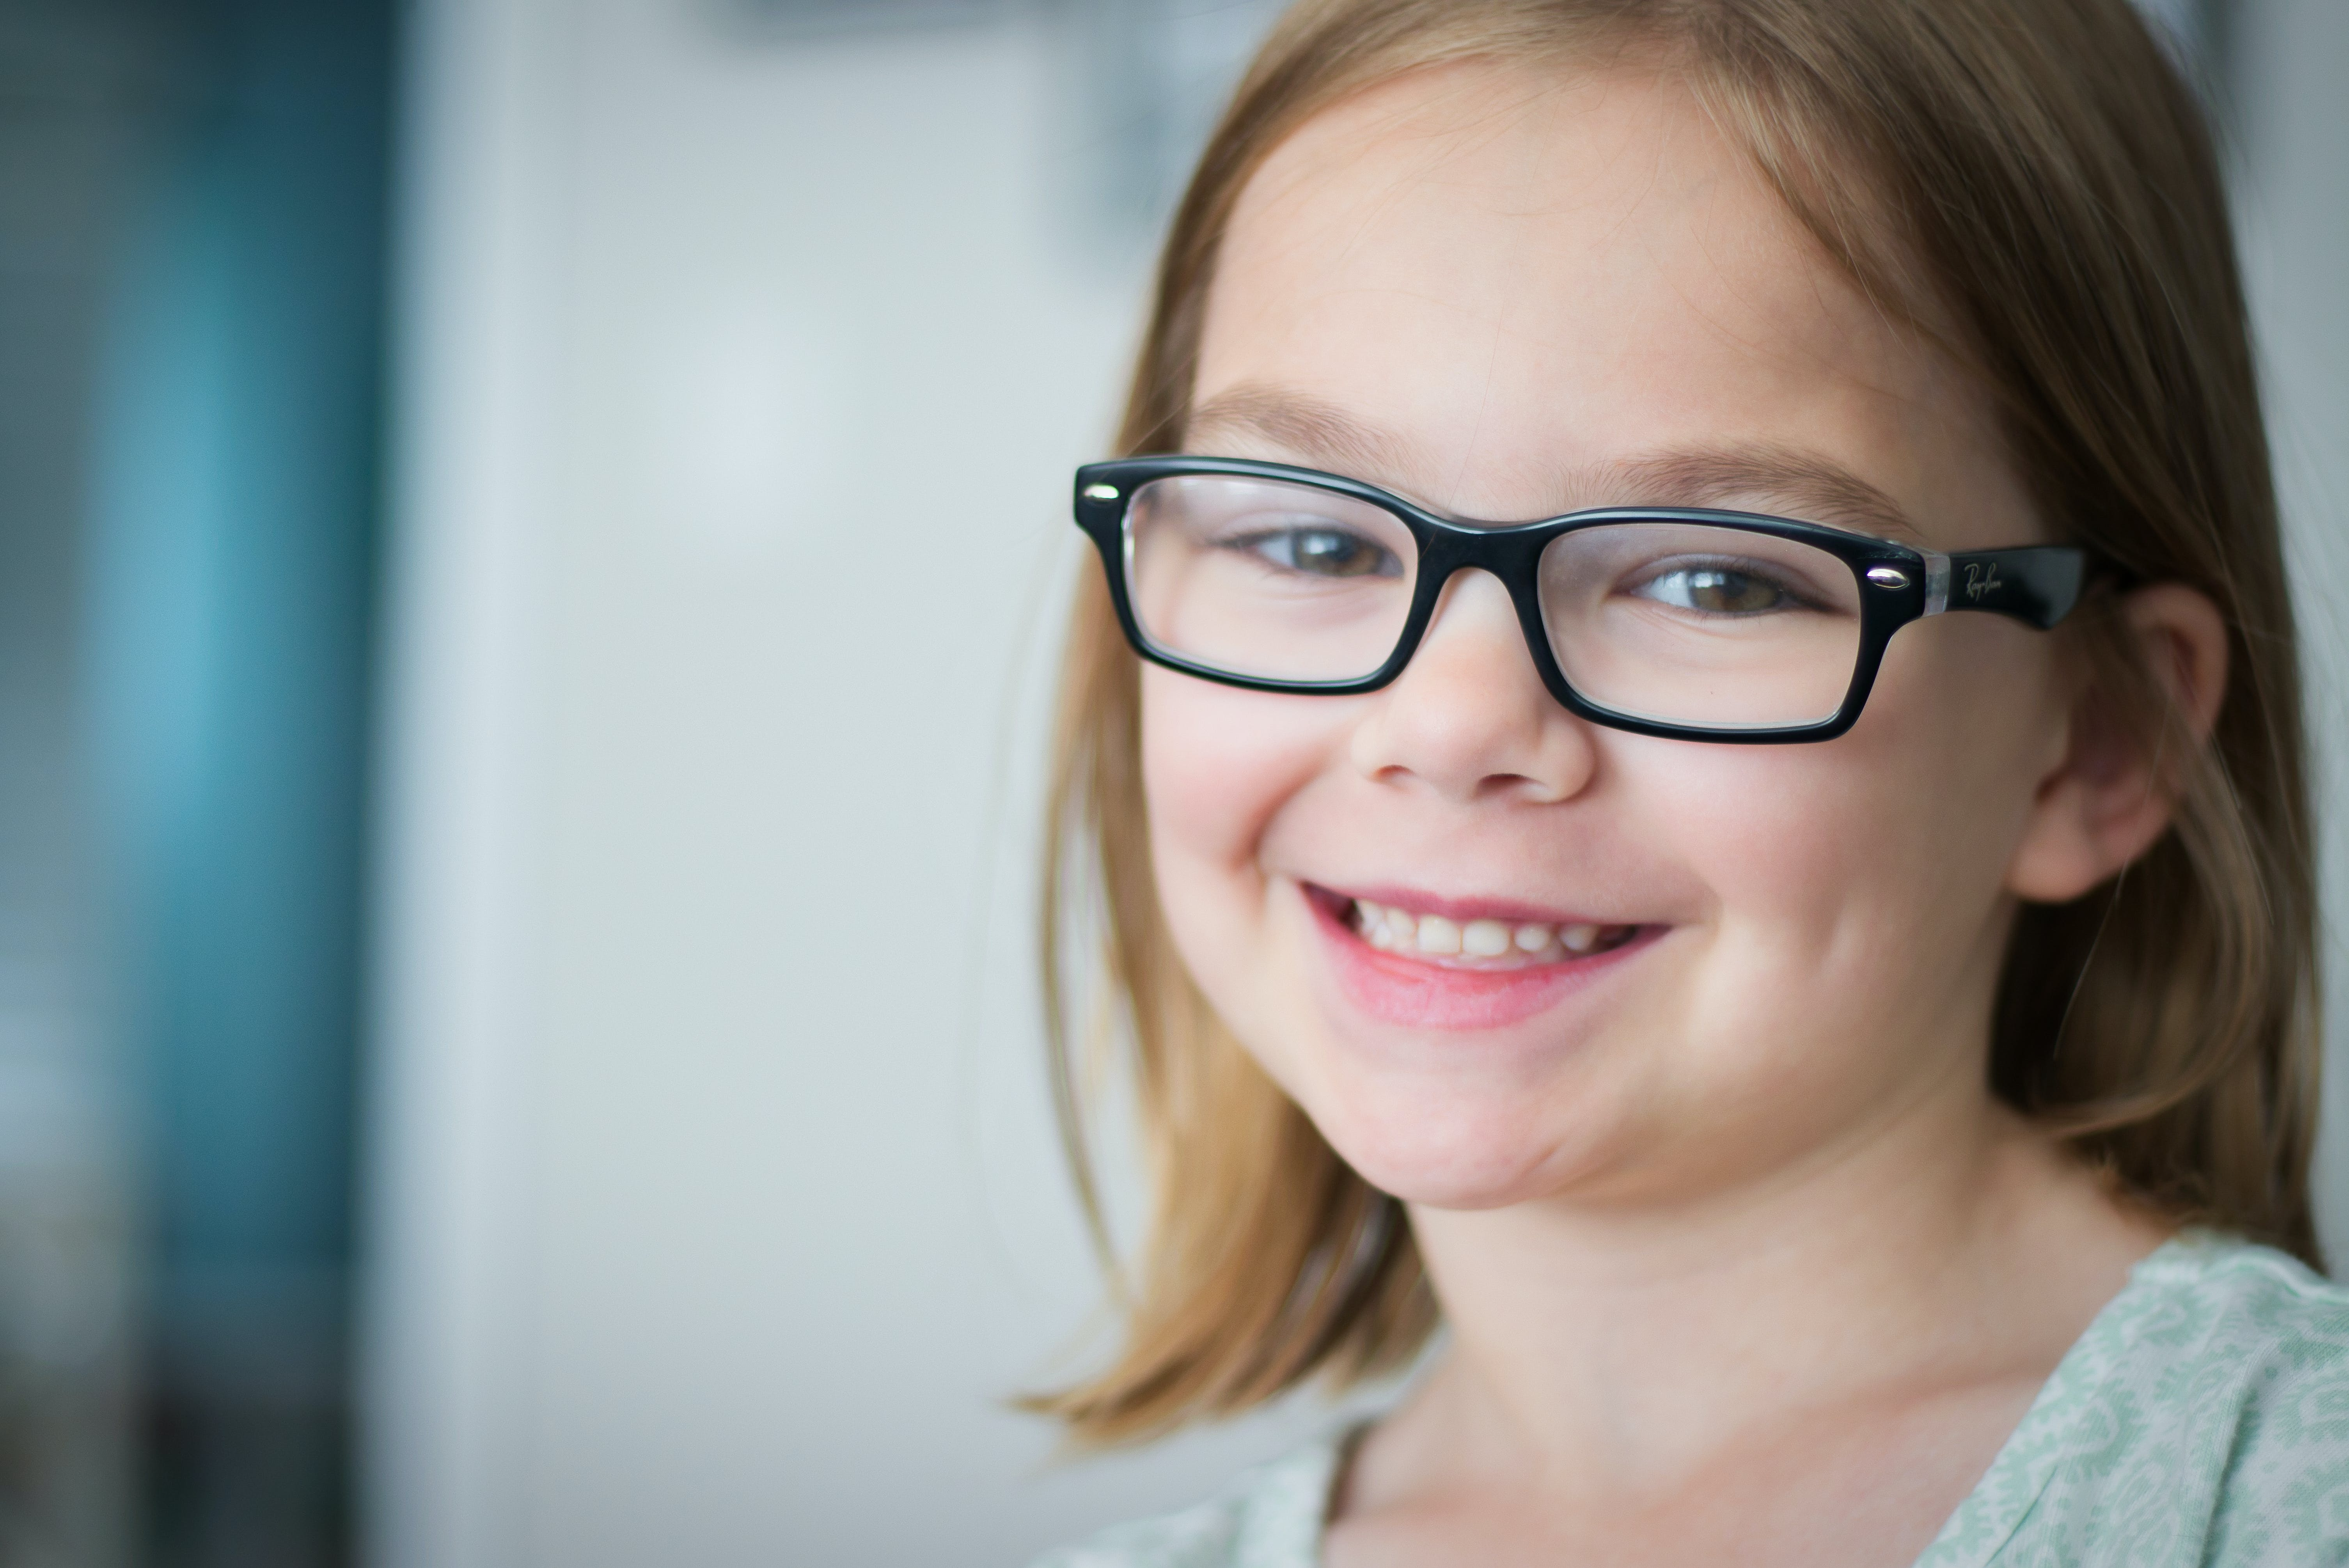 Free stock photo of child, eye glasses, black glasses